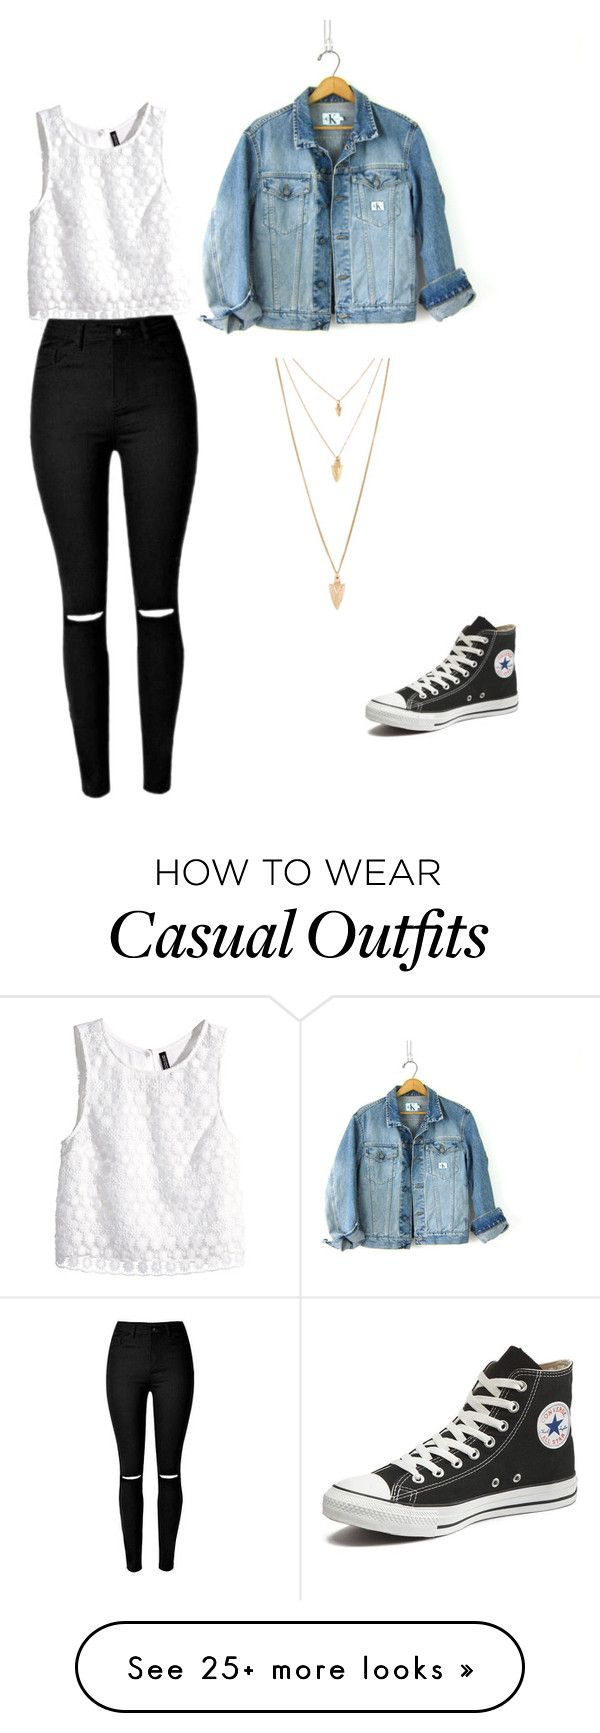 Casual School Outfit by helen-bryla on Polyvore featuring HM, Calvin Klein, Forever 21 and Converse